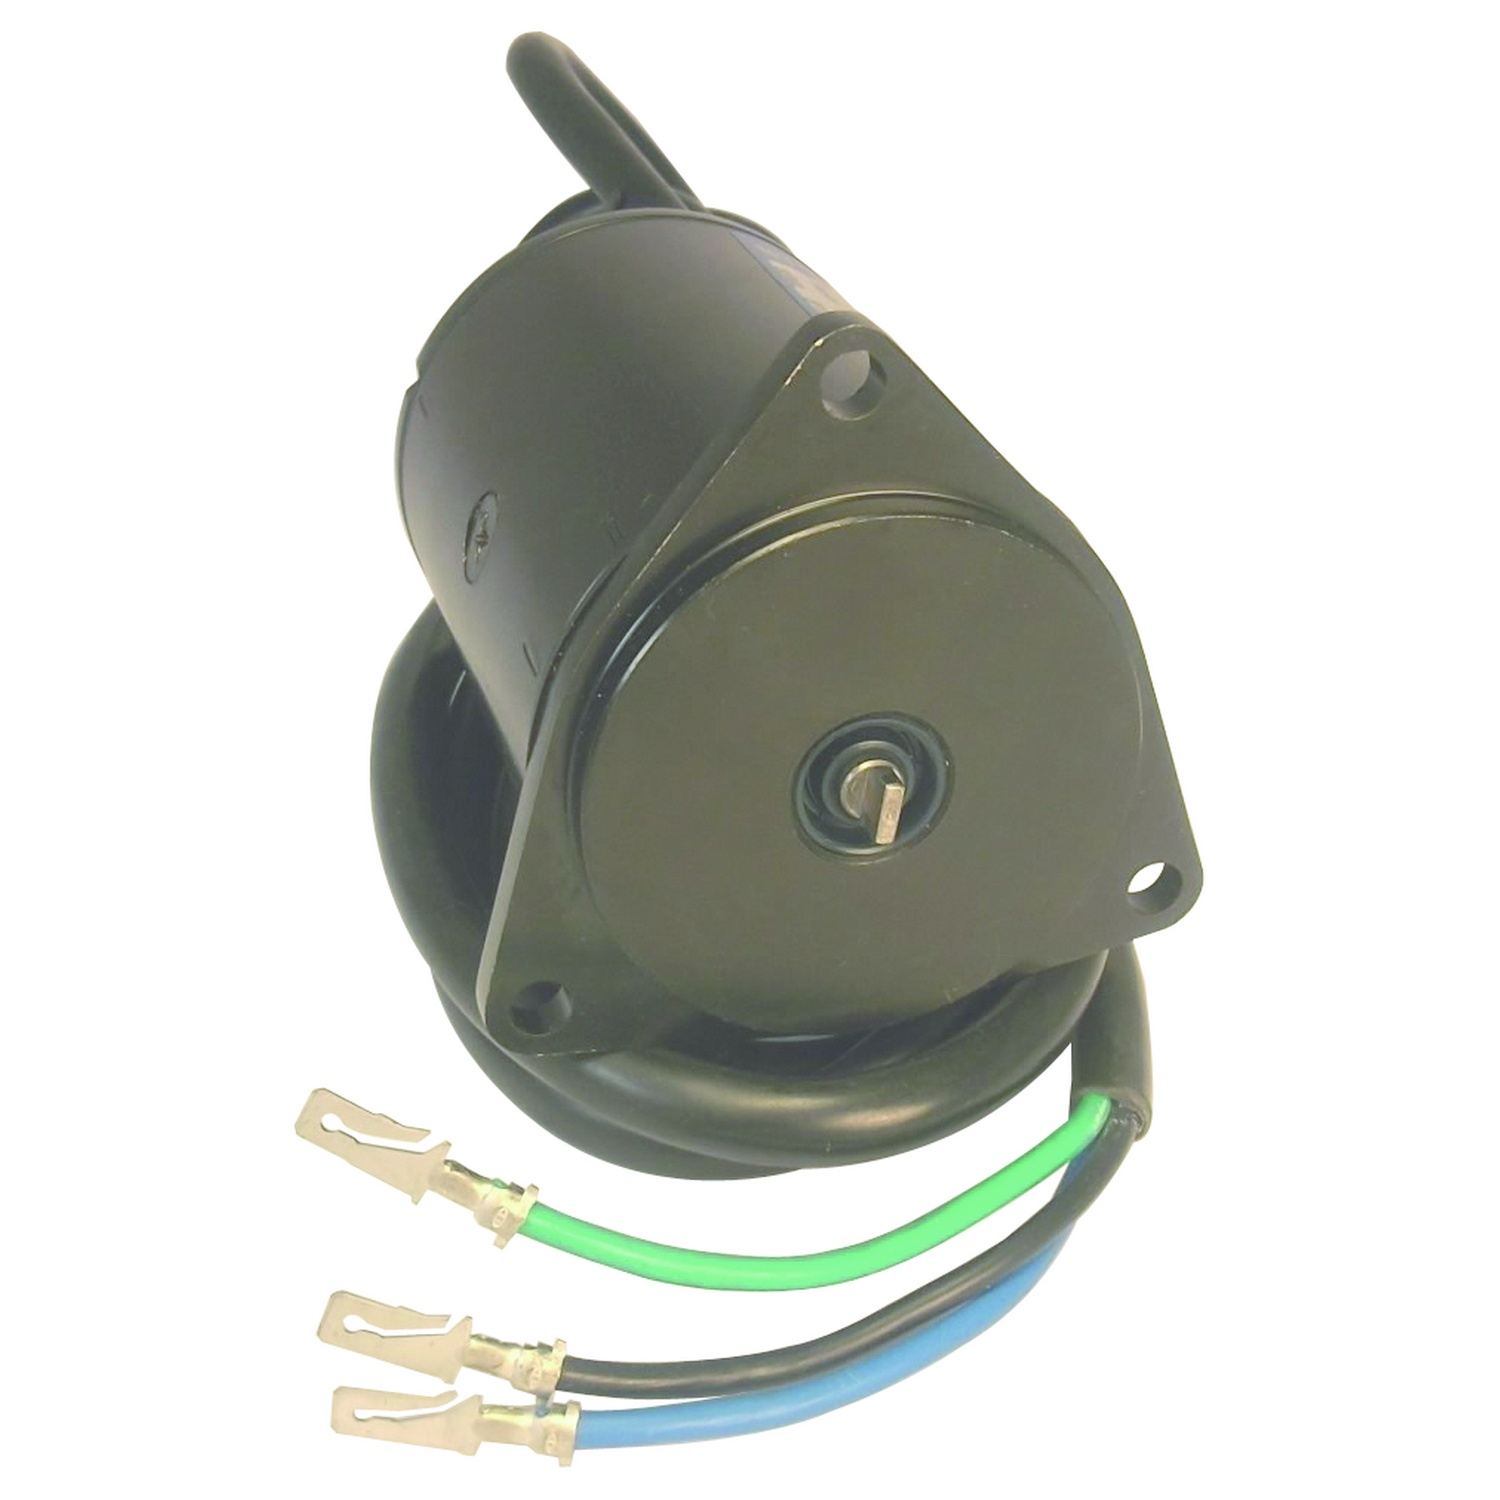 Omc 984356 sterndrive replacement for Omc cobra tilt trim motor